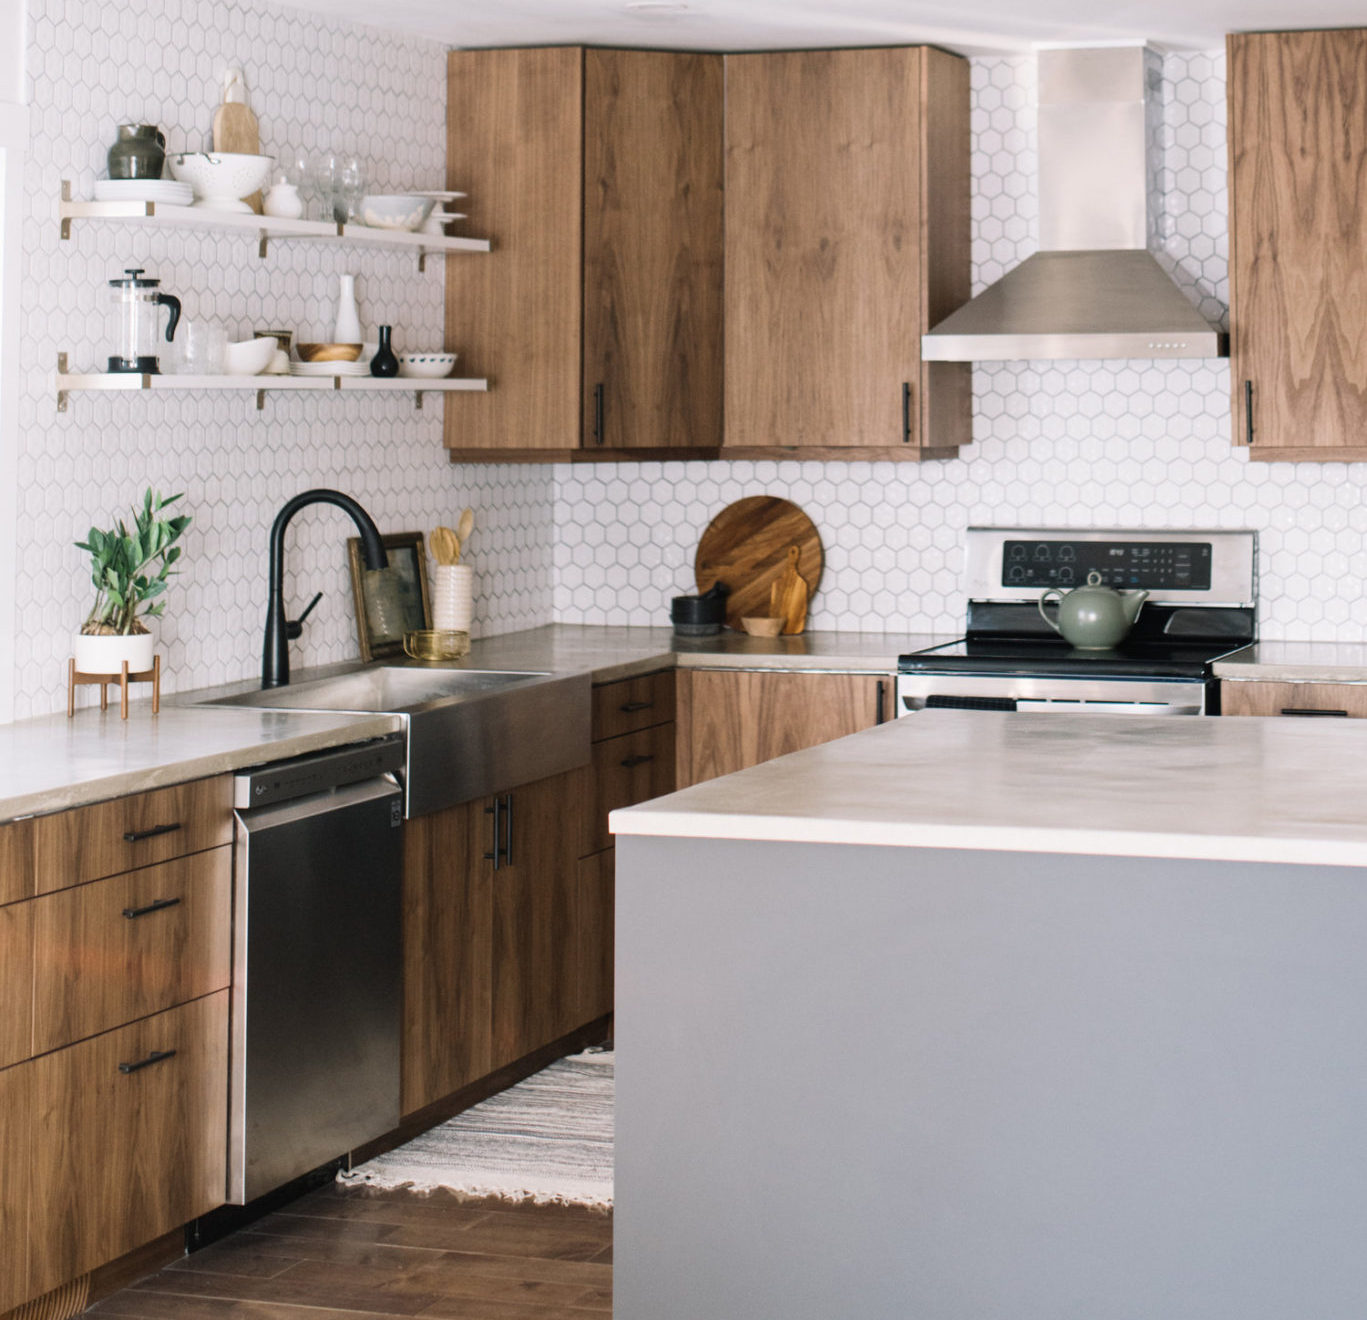 7 Amazing Backsplash Ideas That Are Not Subway Tiles House By The Bay Design